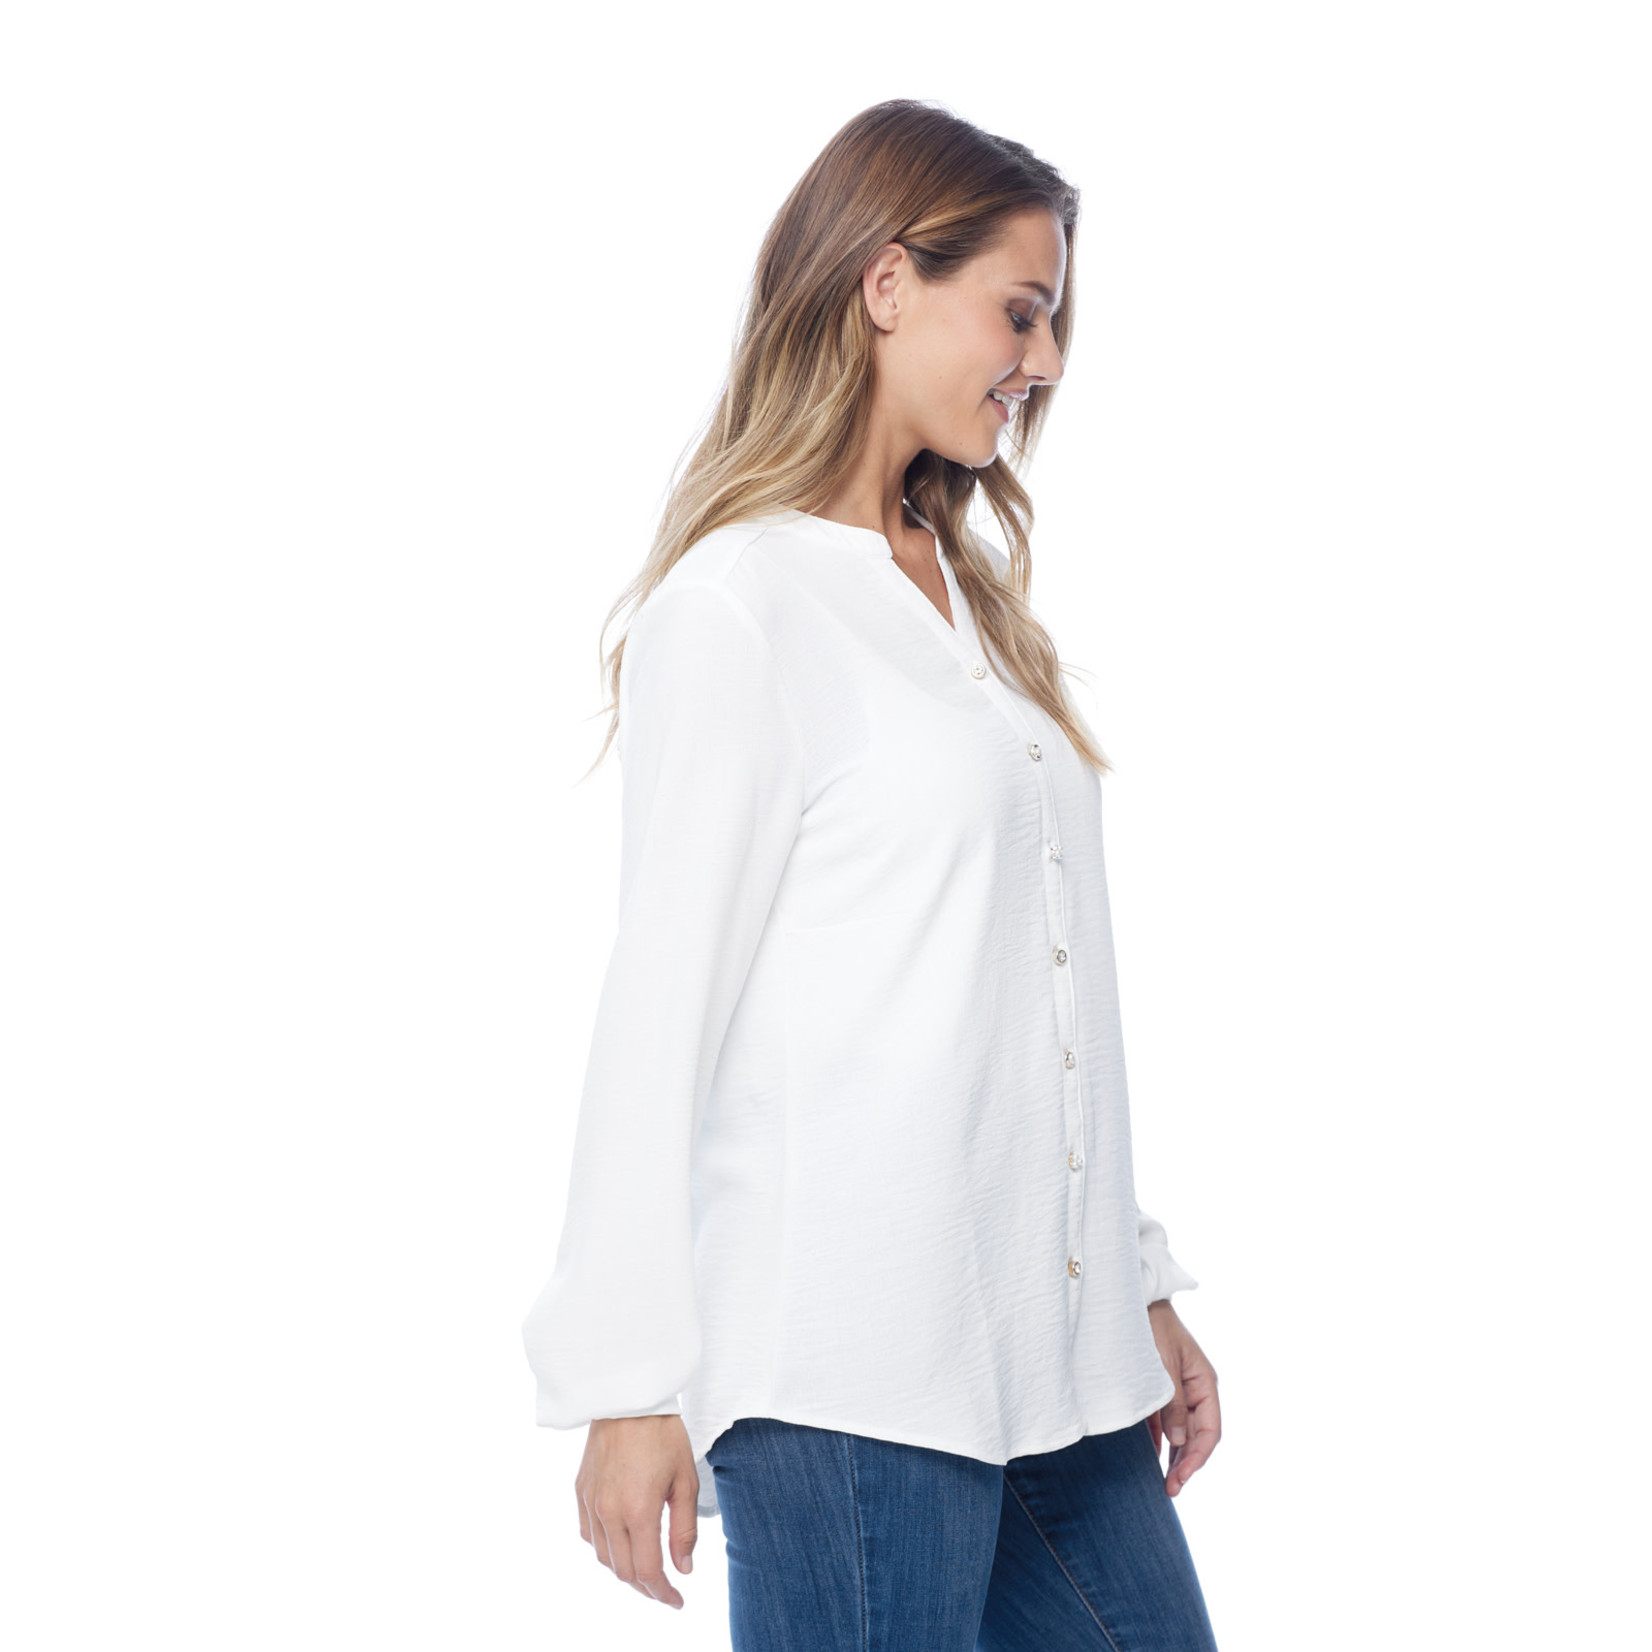 FDJ Gold and Pearl Button Up Blouse in Cream